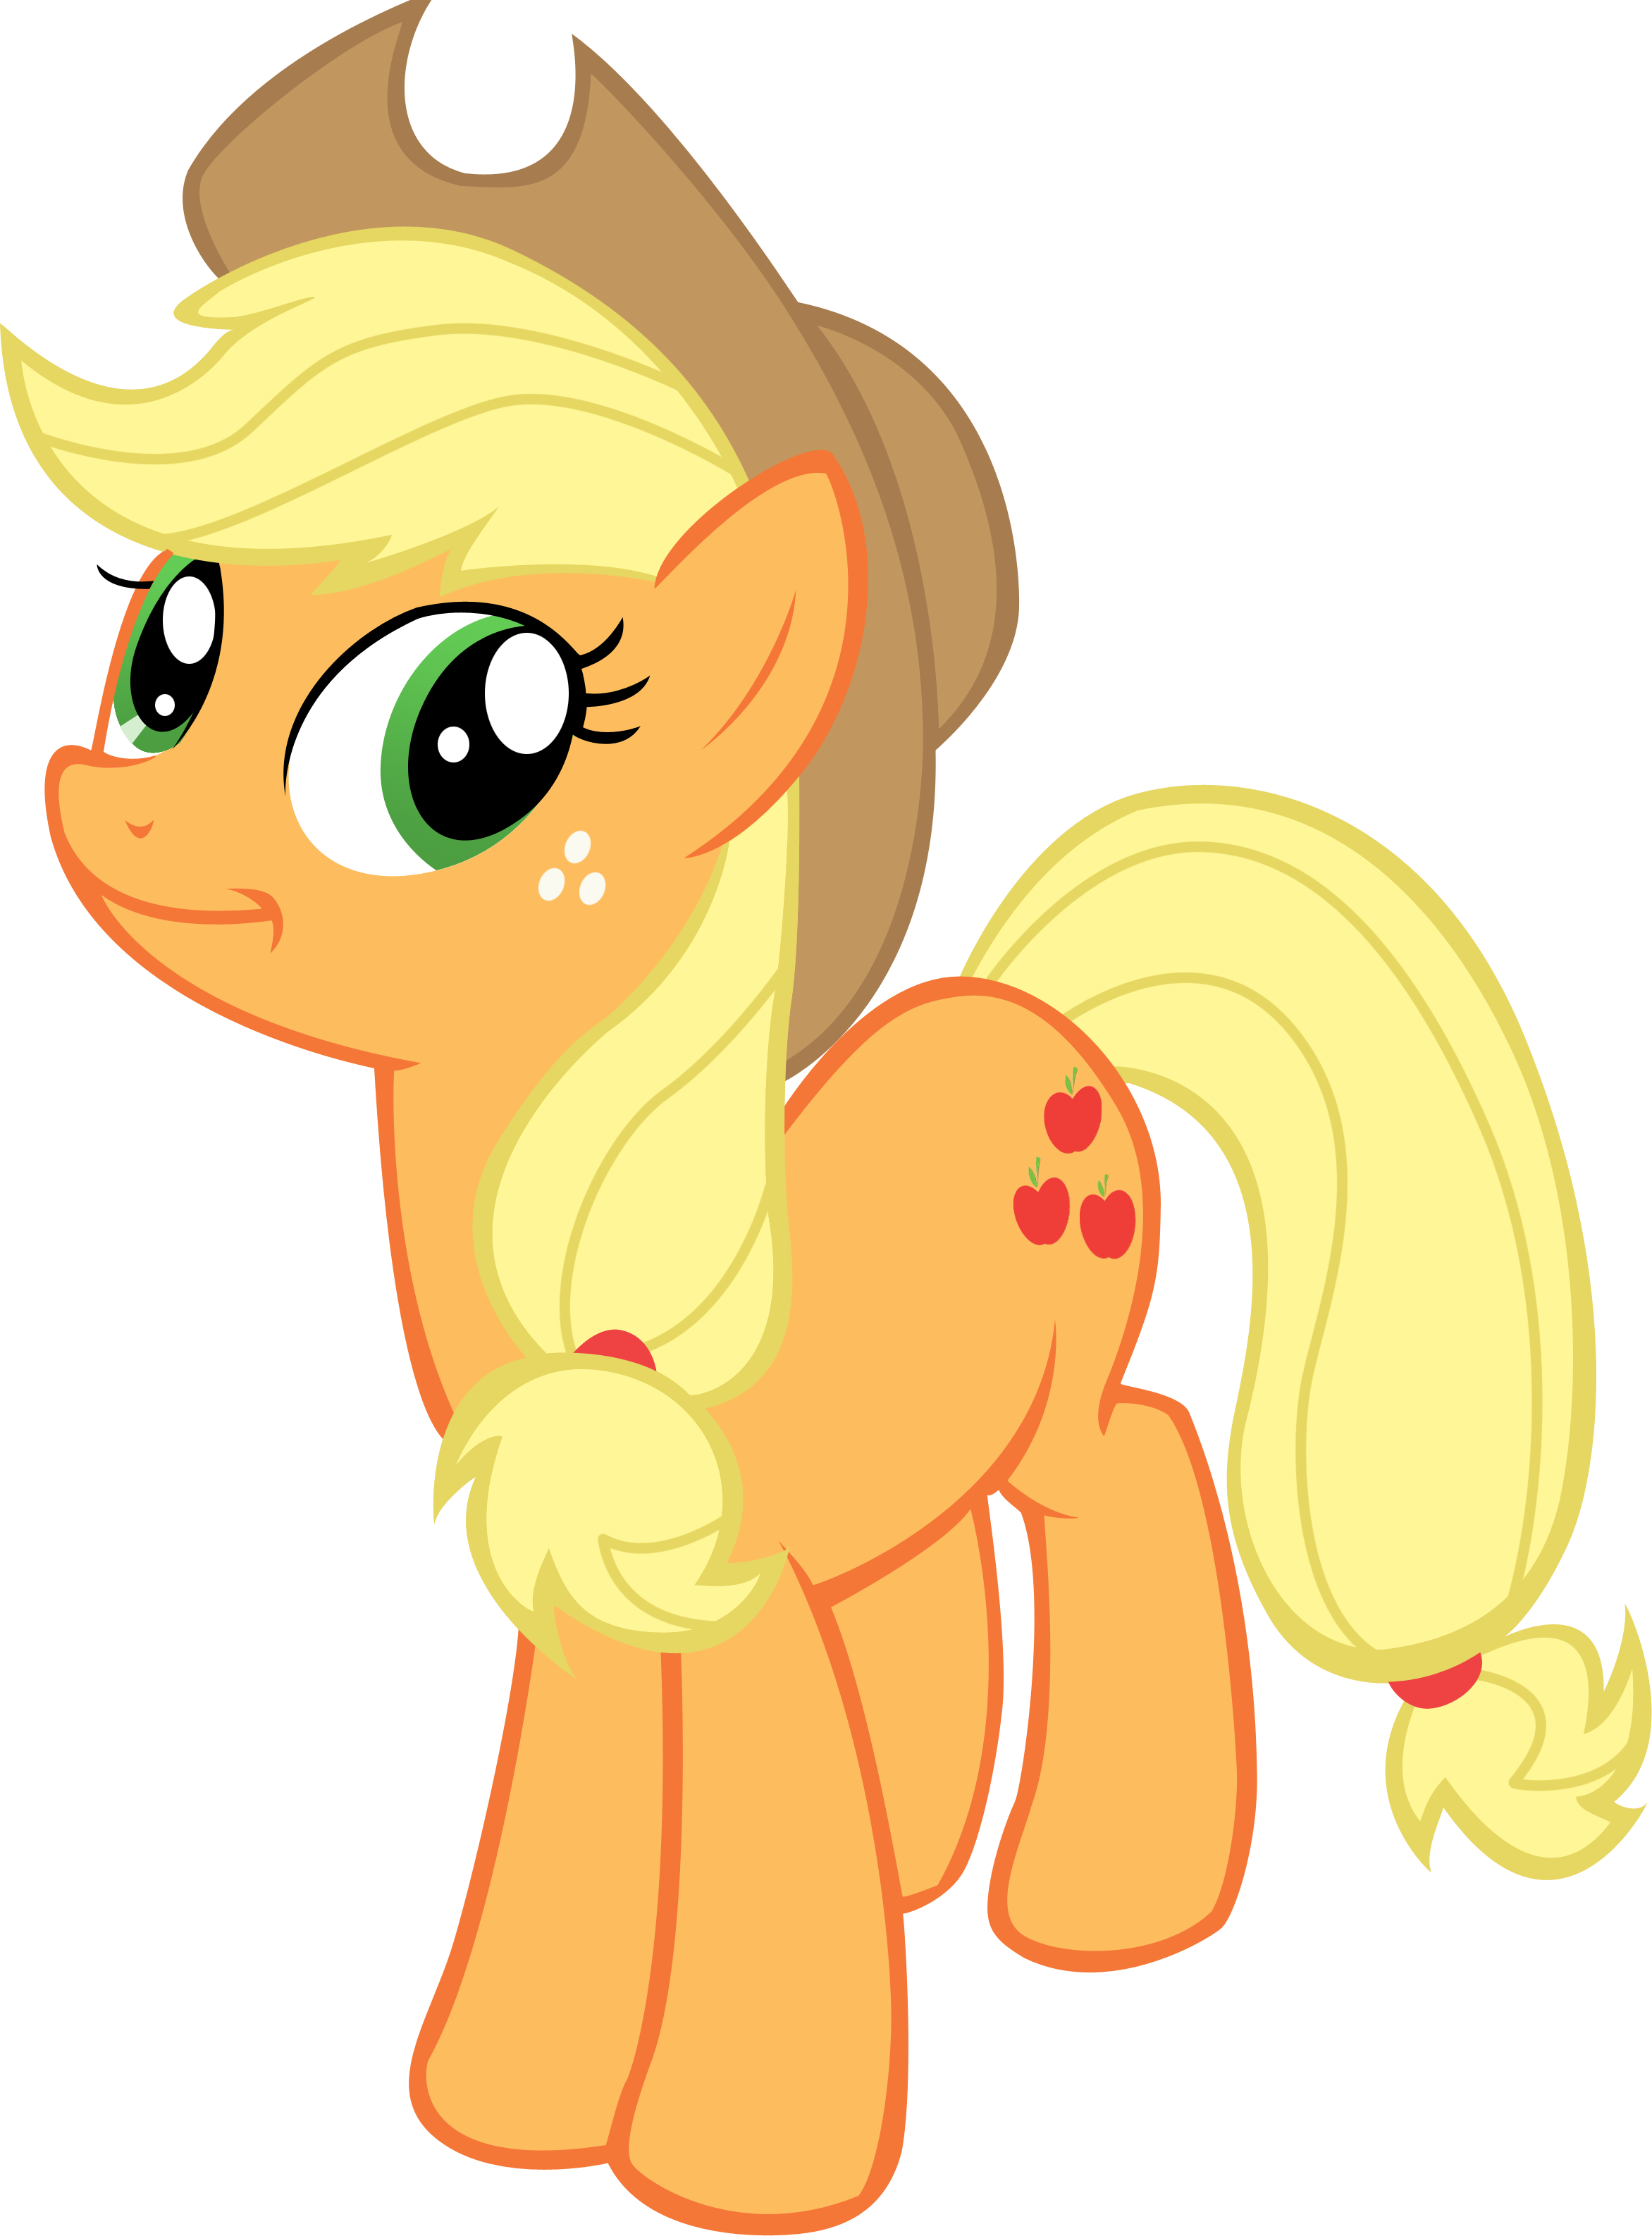 Drink apple jack clipart clipart library stock Apple Jack | Cake Reference & Tutorials | Pinterest | Apple jacks clipart library stock